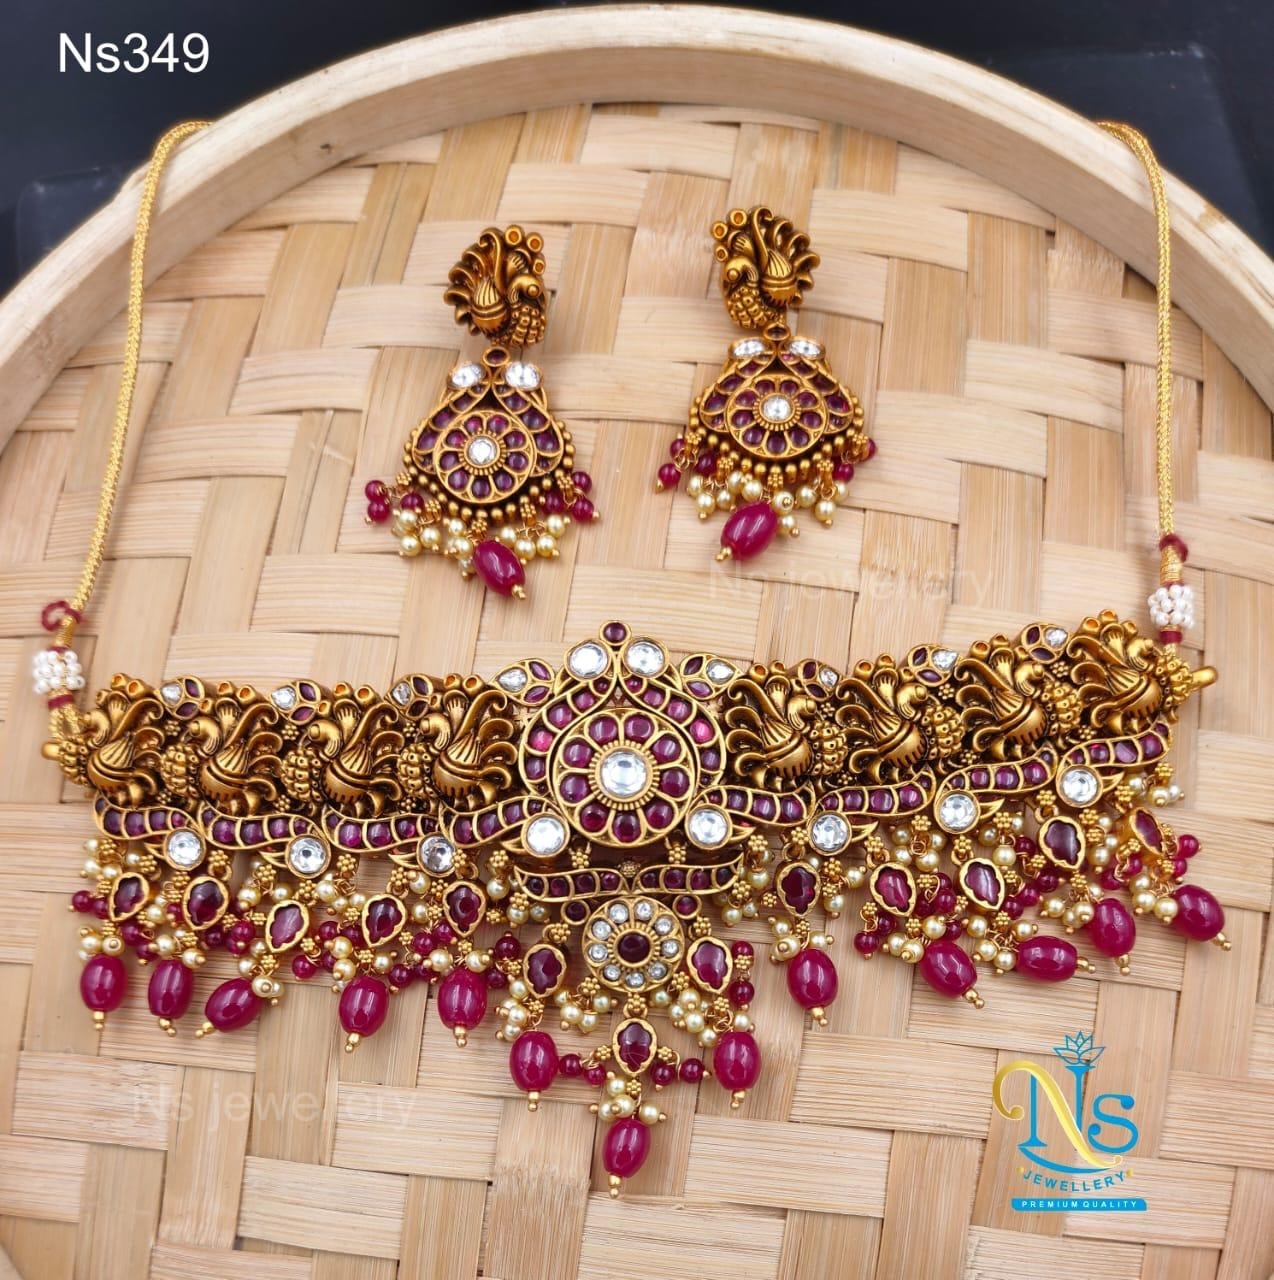 Beautiful one gram gold swan motif necklace with matching earrings.